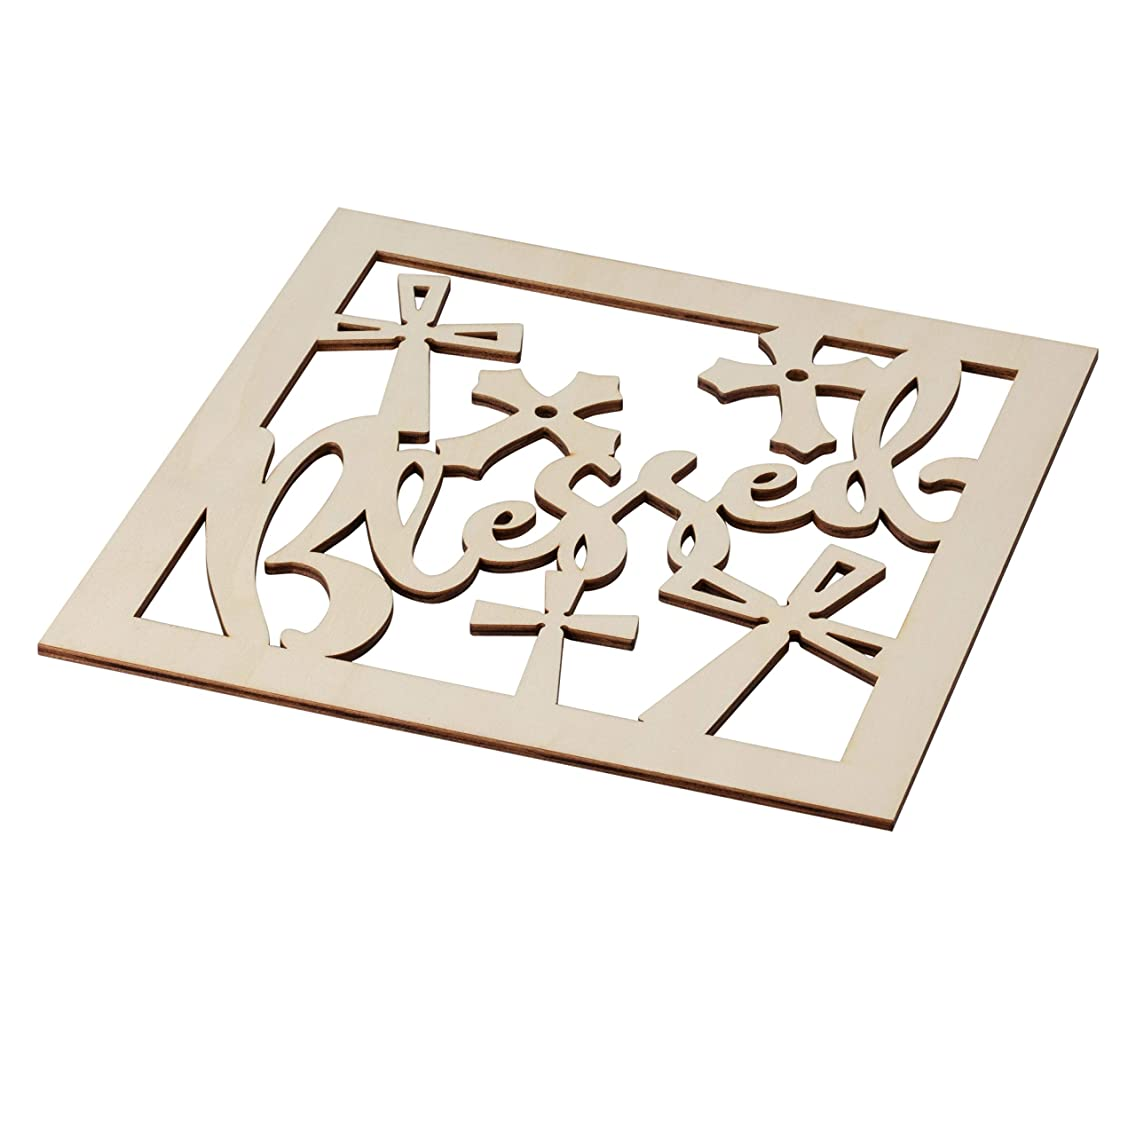 Genie Crafts 2-Piece Unfinished Wooden Blessed Cutout, Cross Wall Art Decor for Painting, DIY Wood Crafts, and Signs, 11.6 x 0.2 Inches